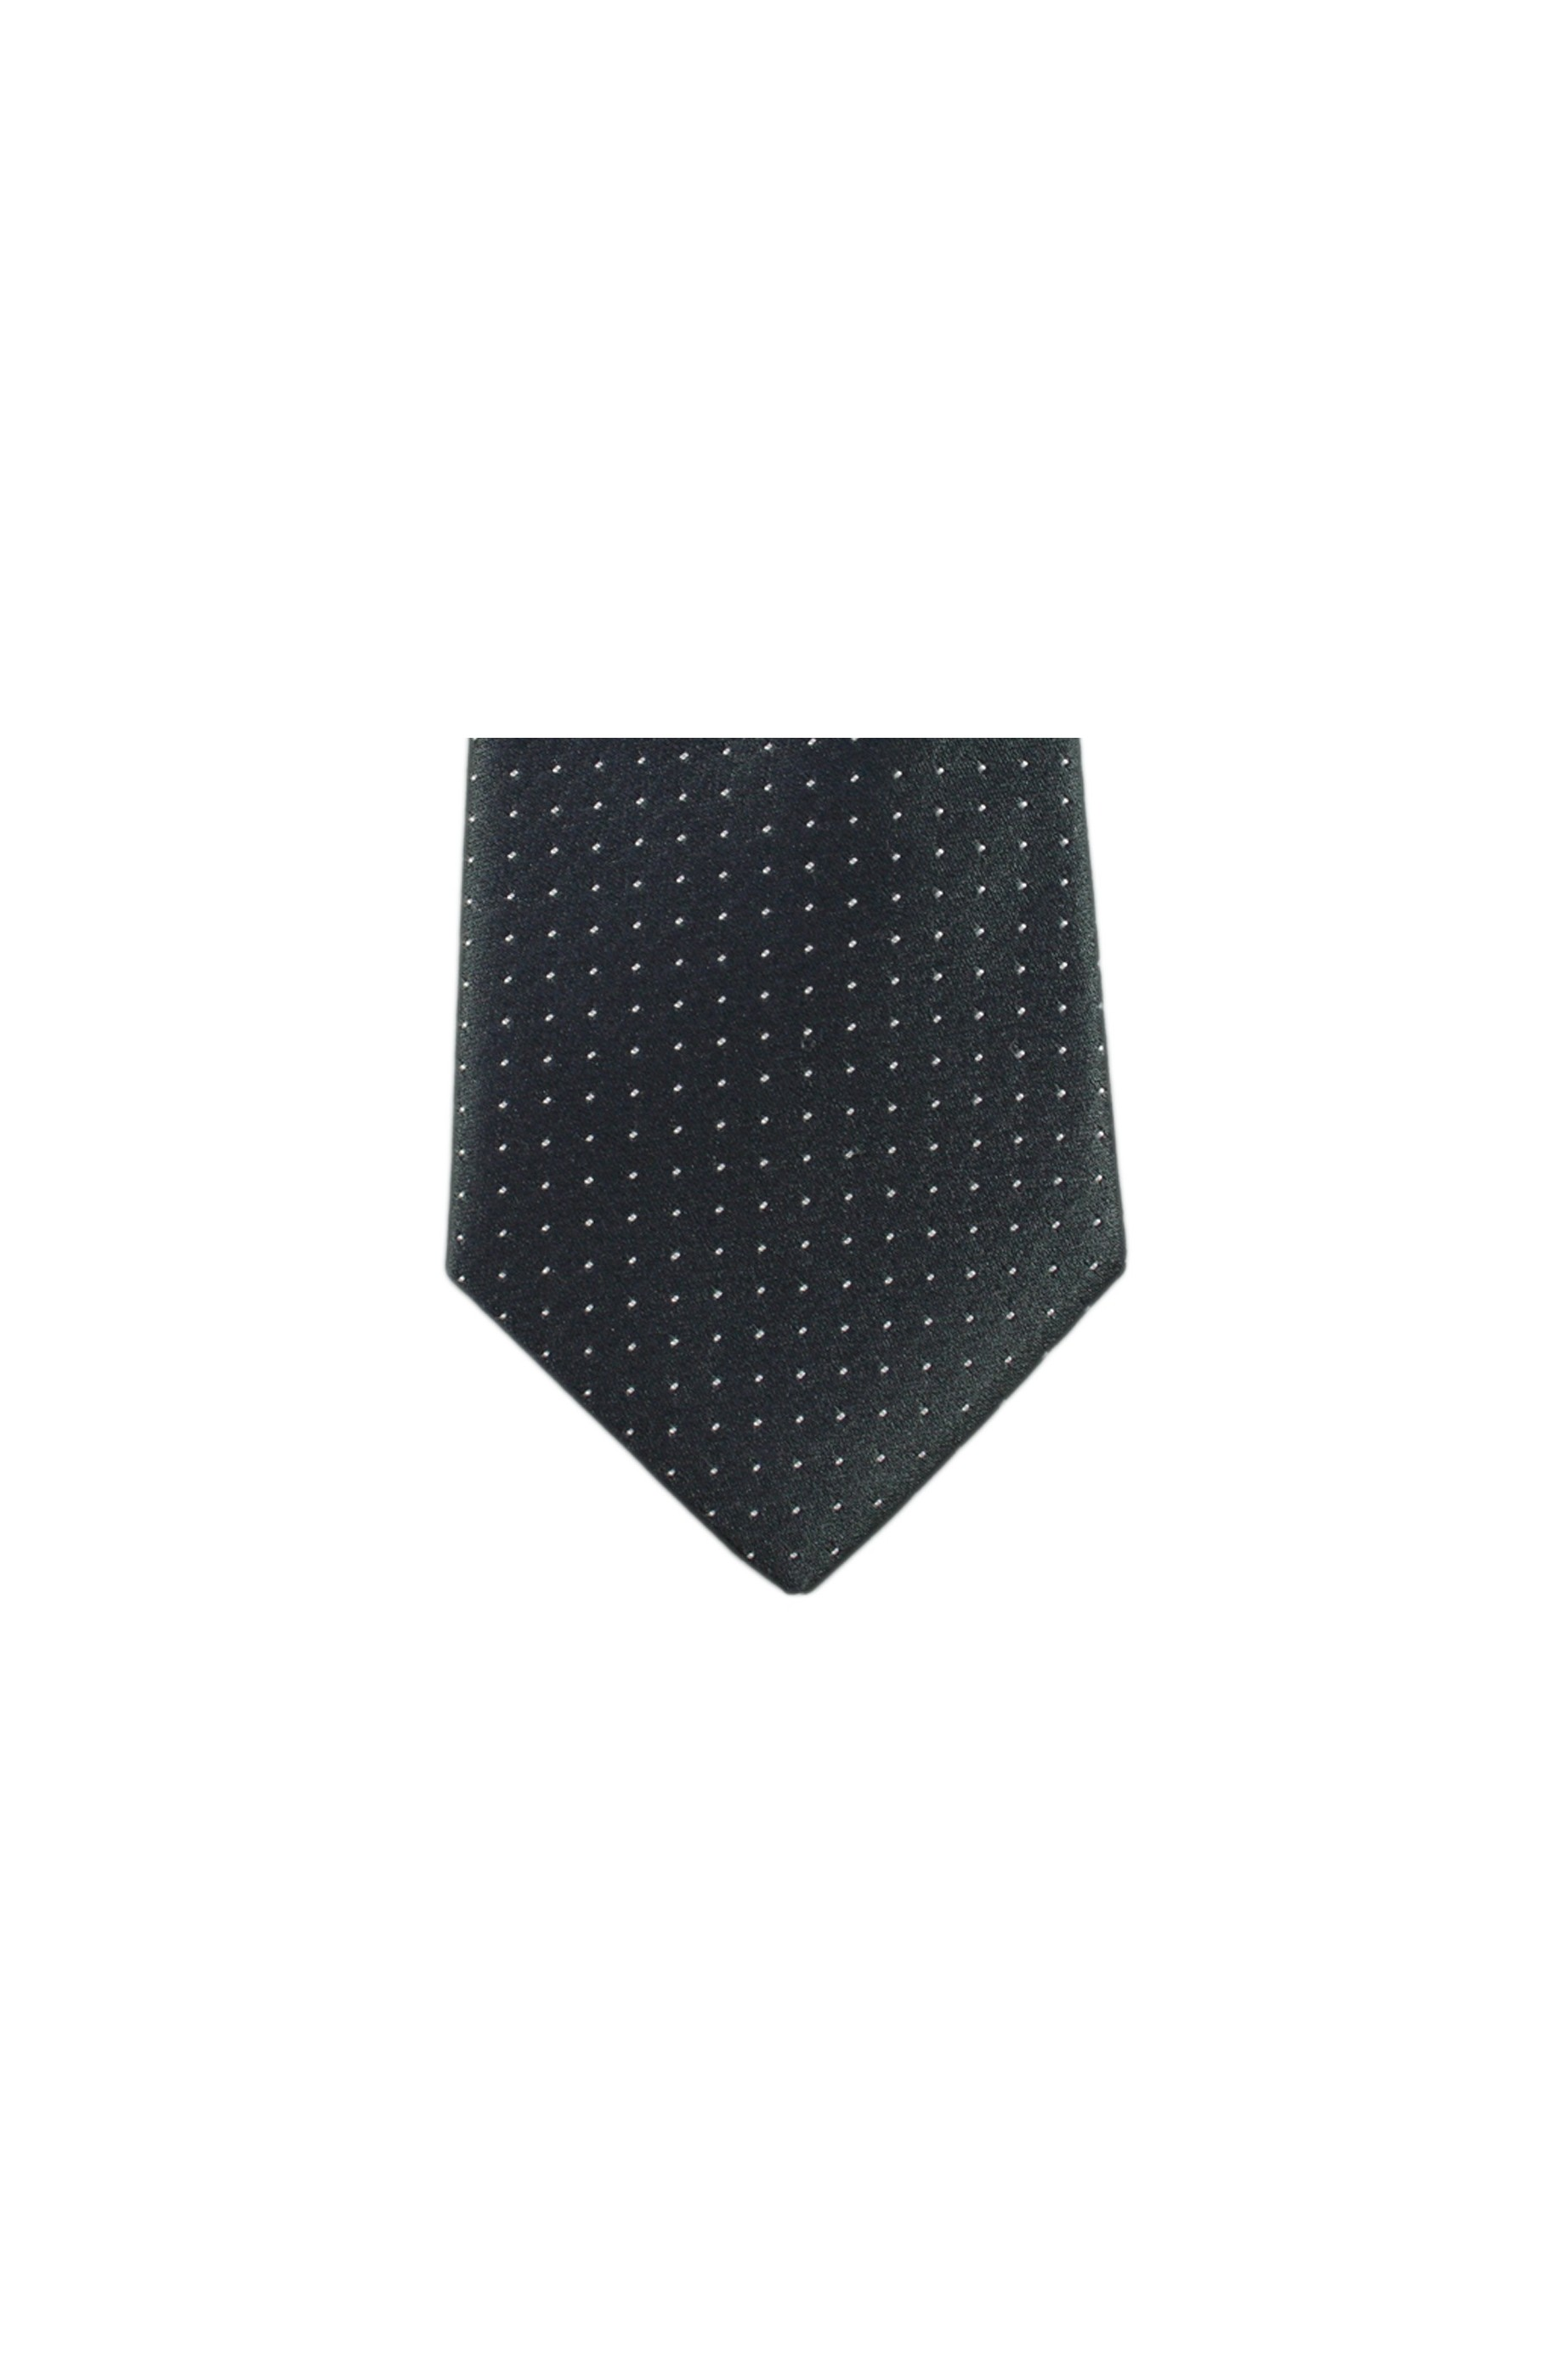 Majesté Couture Paris: Regular silver tie | Accessories -  Hiphunters Shop